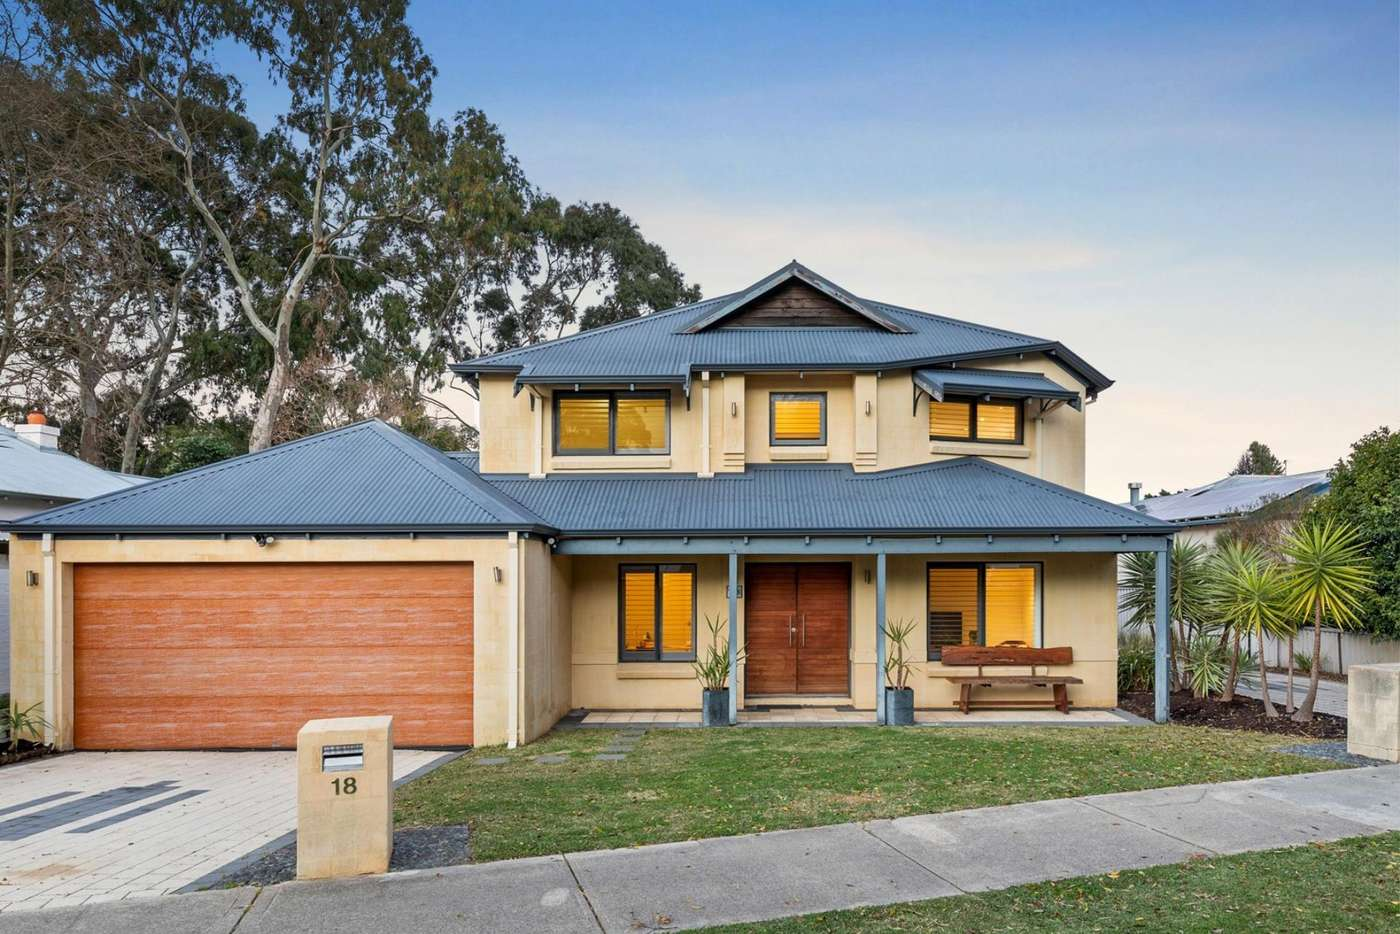 Main view of Homely house listing, 18 Auckland Street, North Perth WA 6006